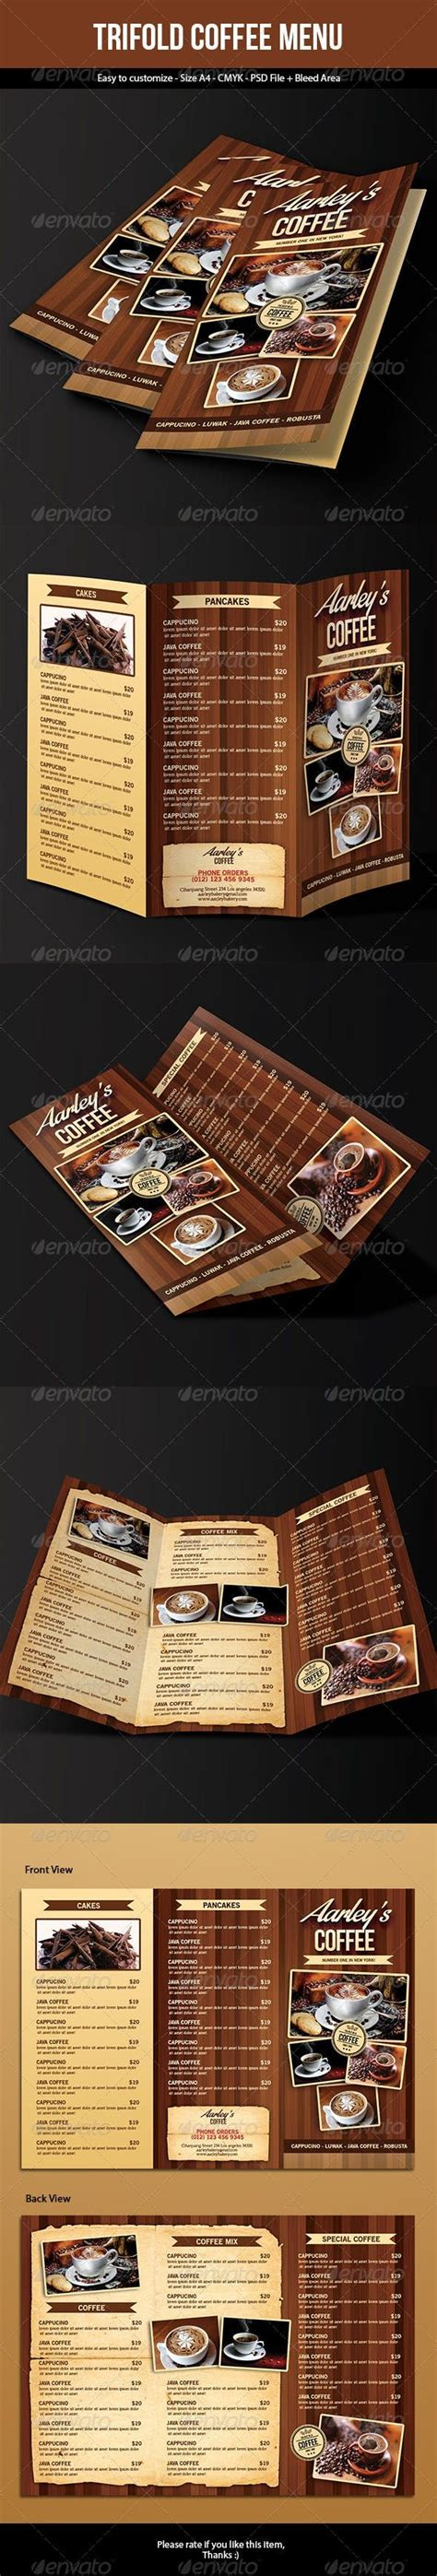 You can get all these by choosing the right theme for your coffee shop. Coffee Menu (Trifold)   Coffee menu, Food menu template, Restaurant menu design